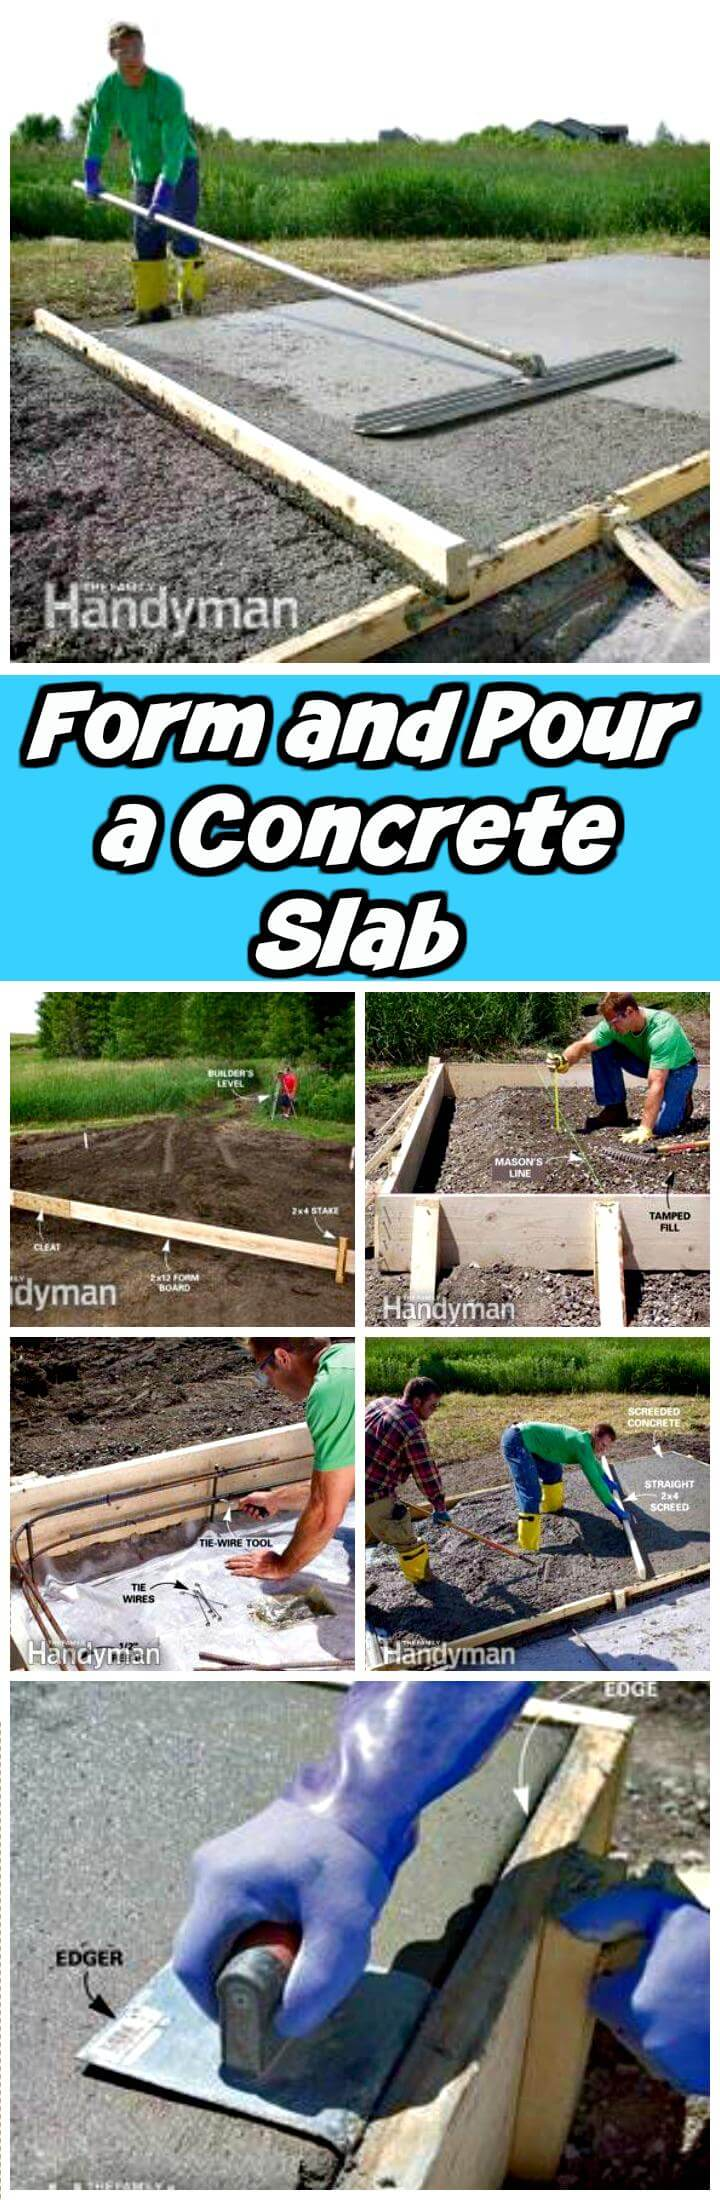 DIY form and puur a concrete slab